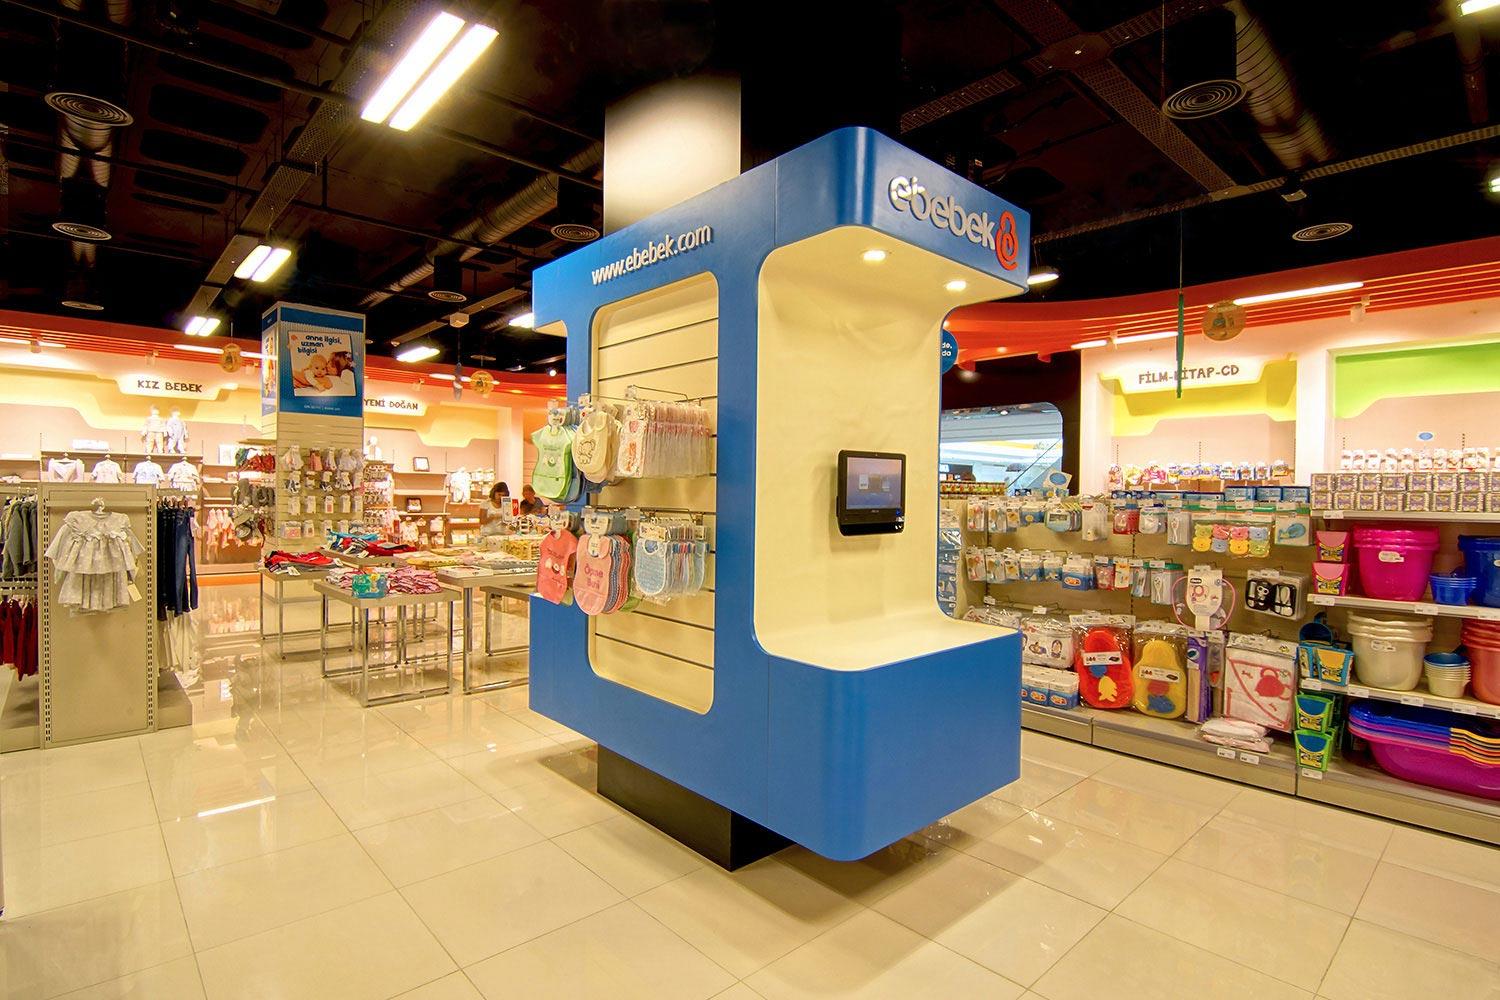 retail-design-Ebebek-06